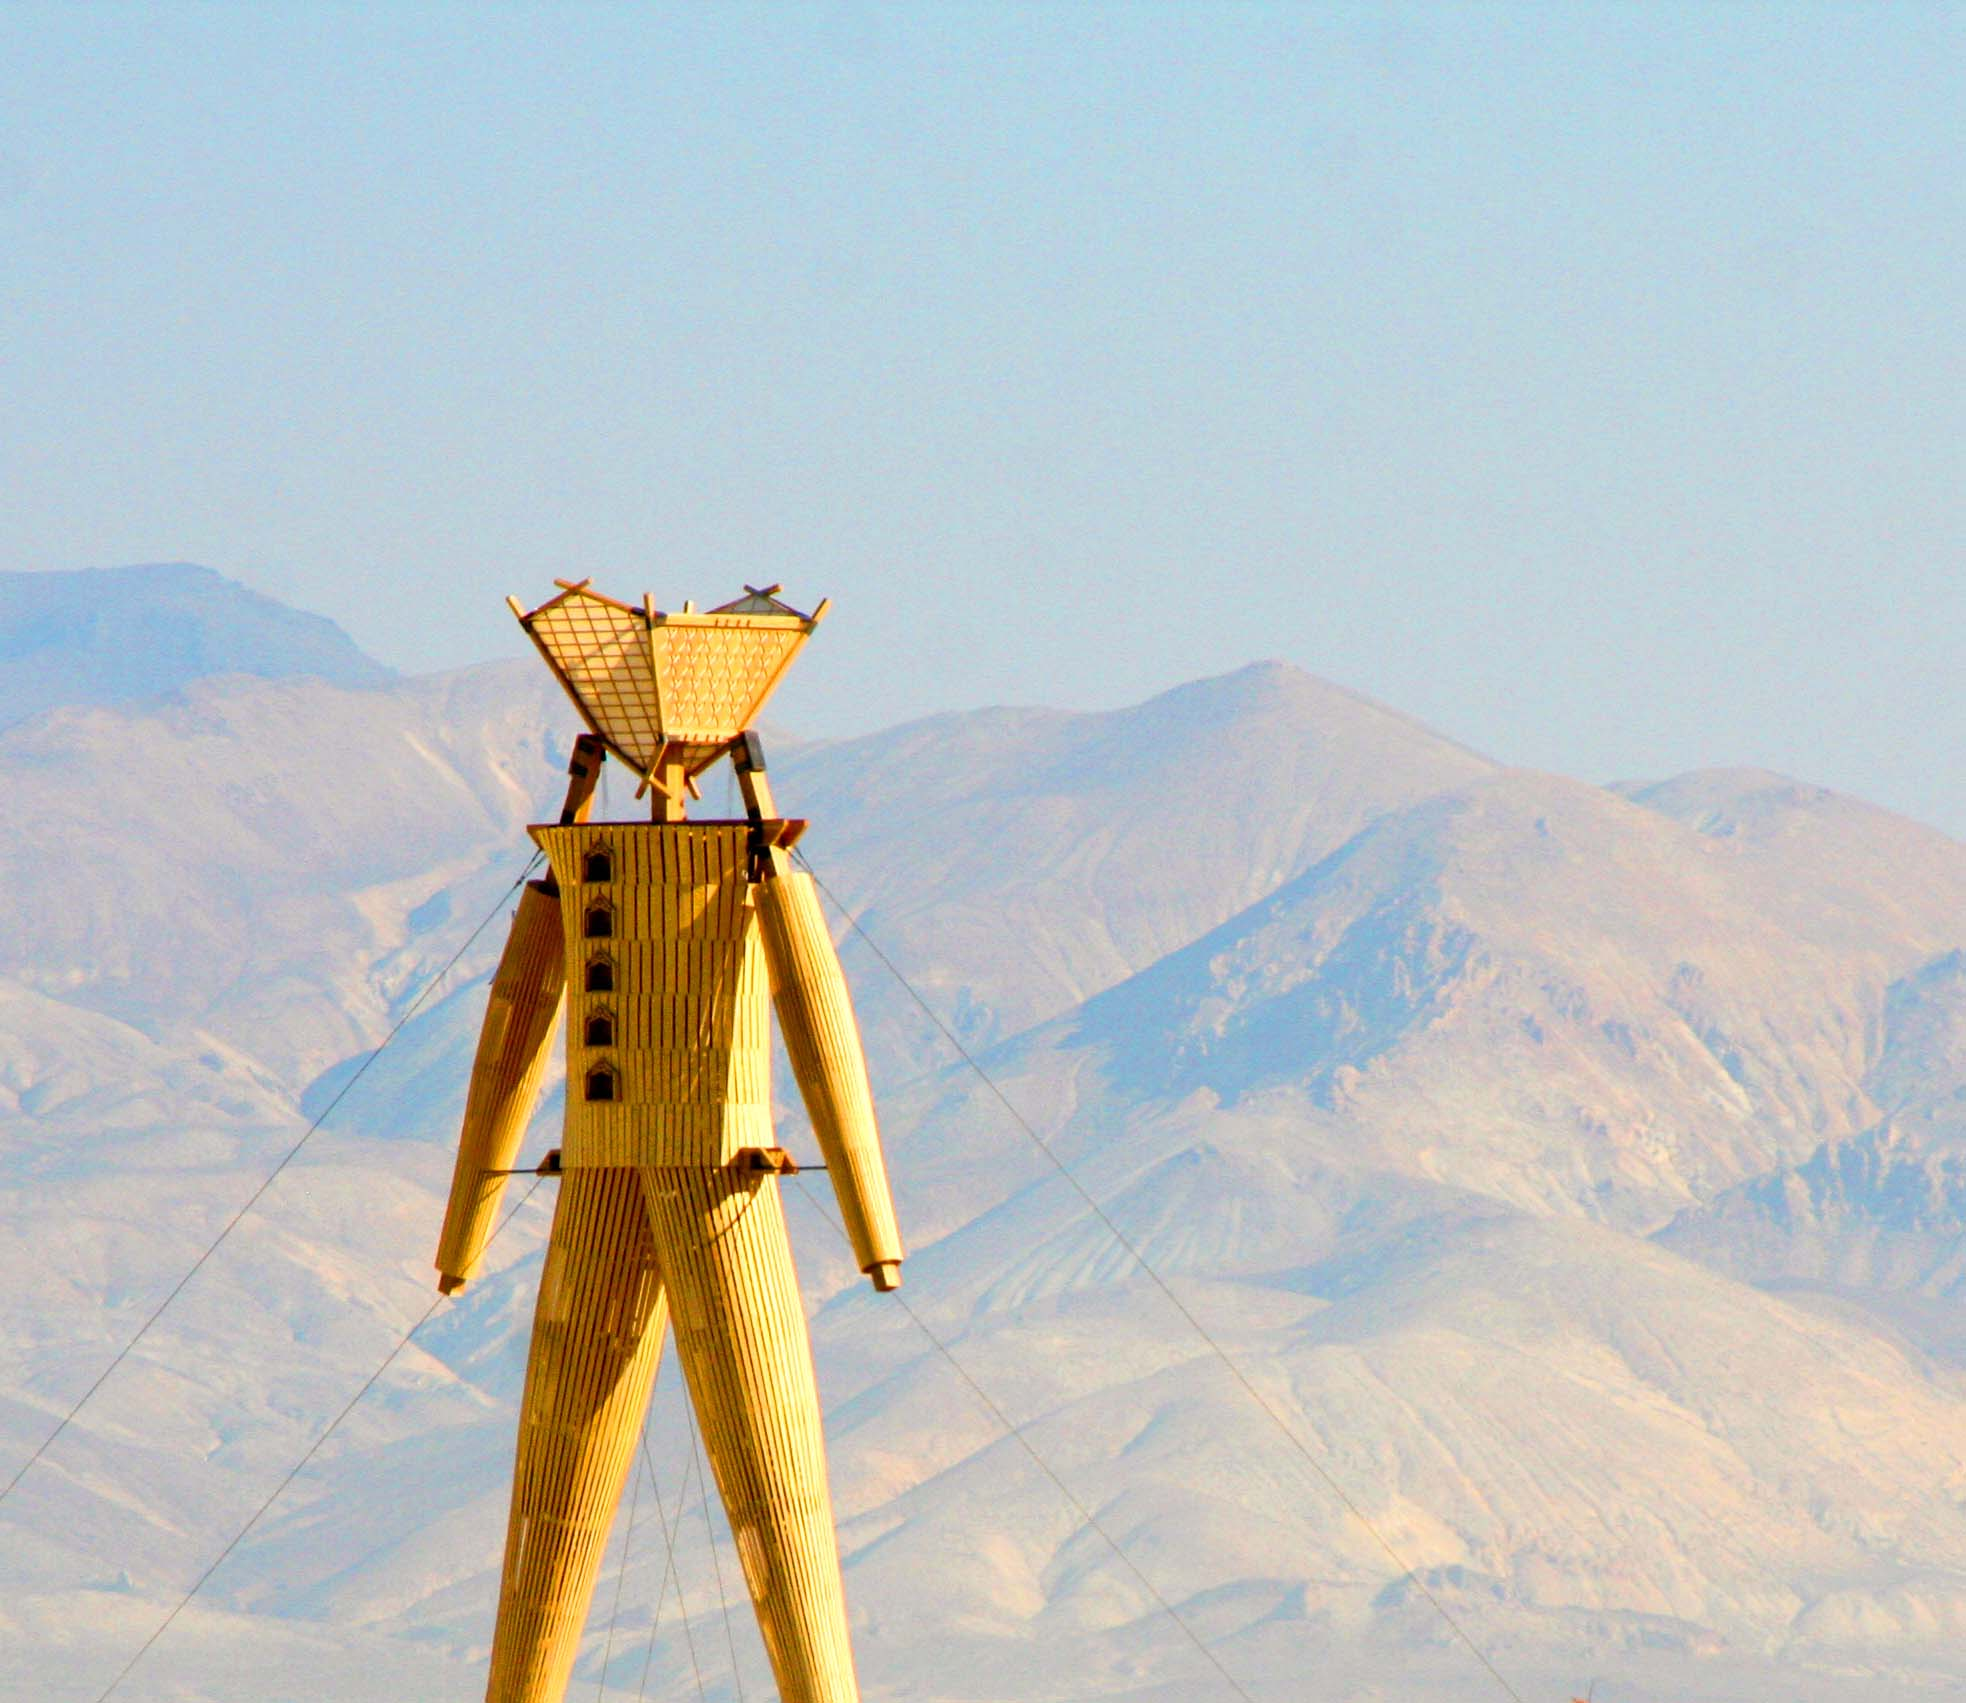 Mountains of the Black rock Desert stand behind the Man at Burning Man.